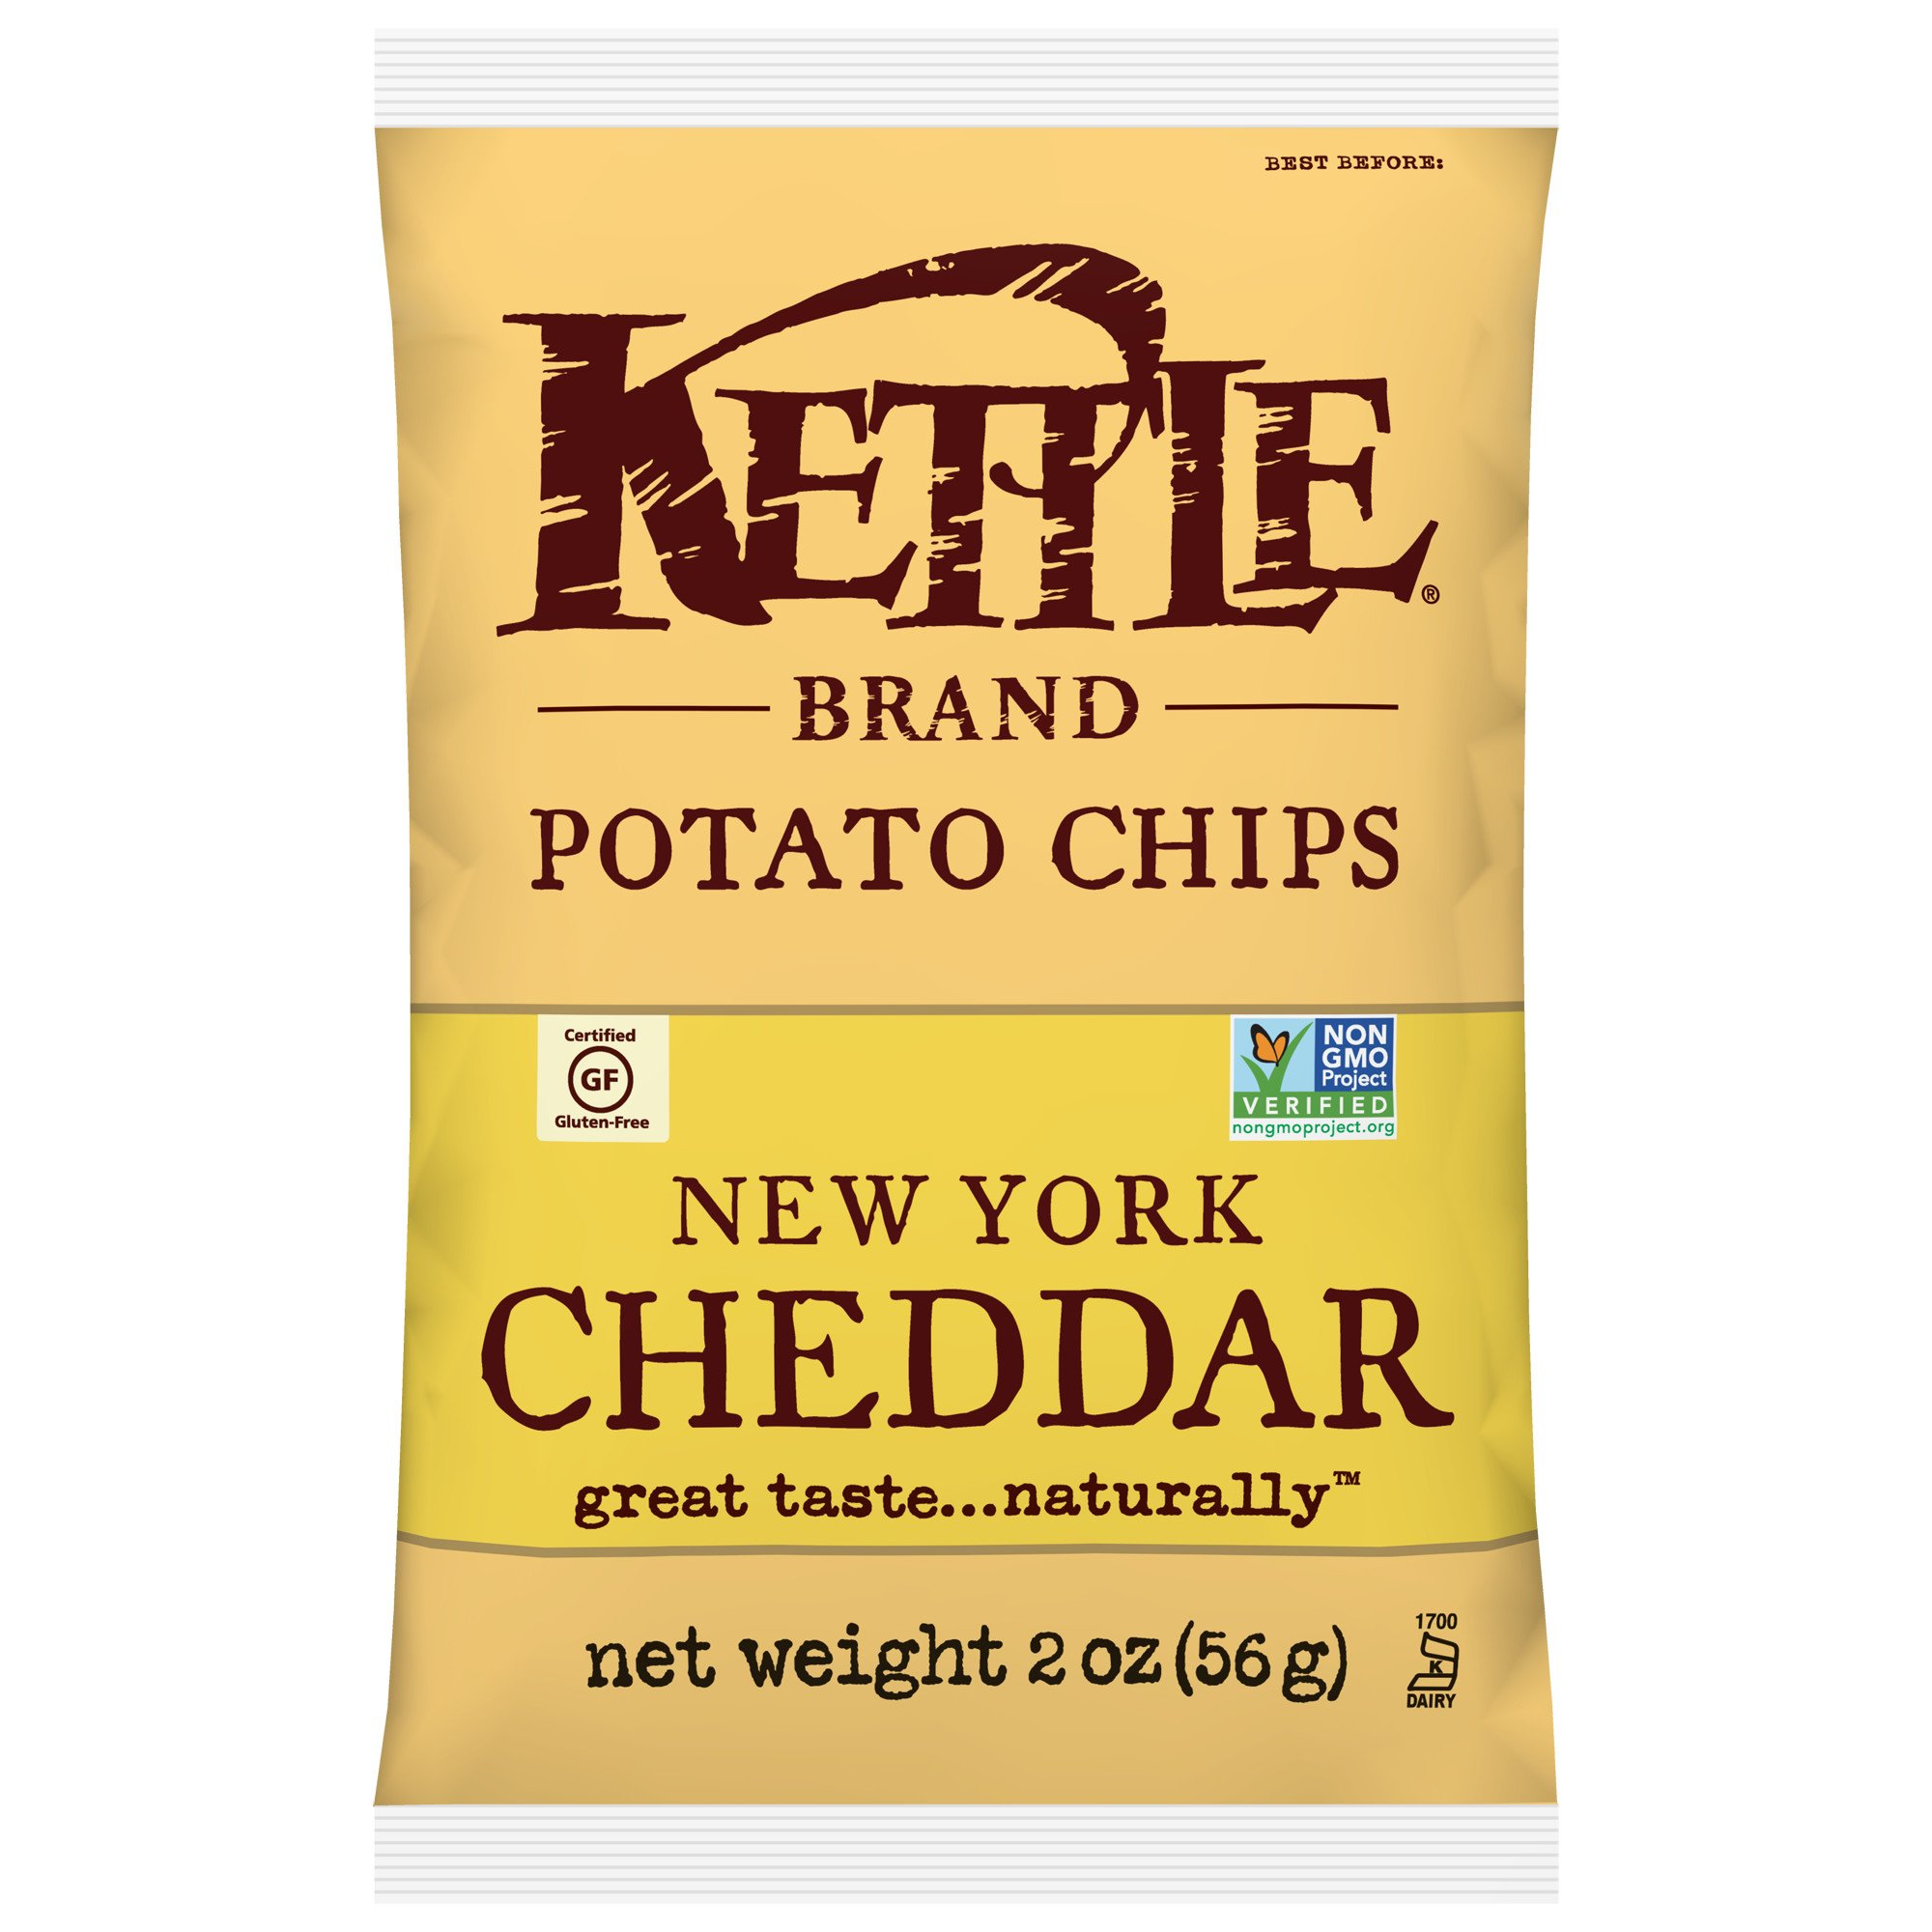 Kettle Brand Potato Chips, New York Cheddar, 2 Ounce Bags (Pack of 24)